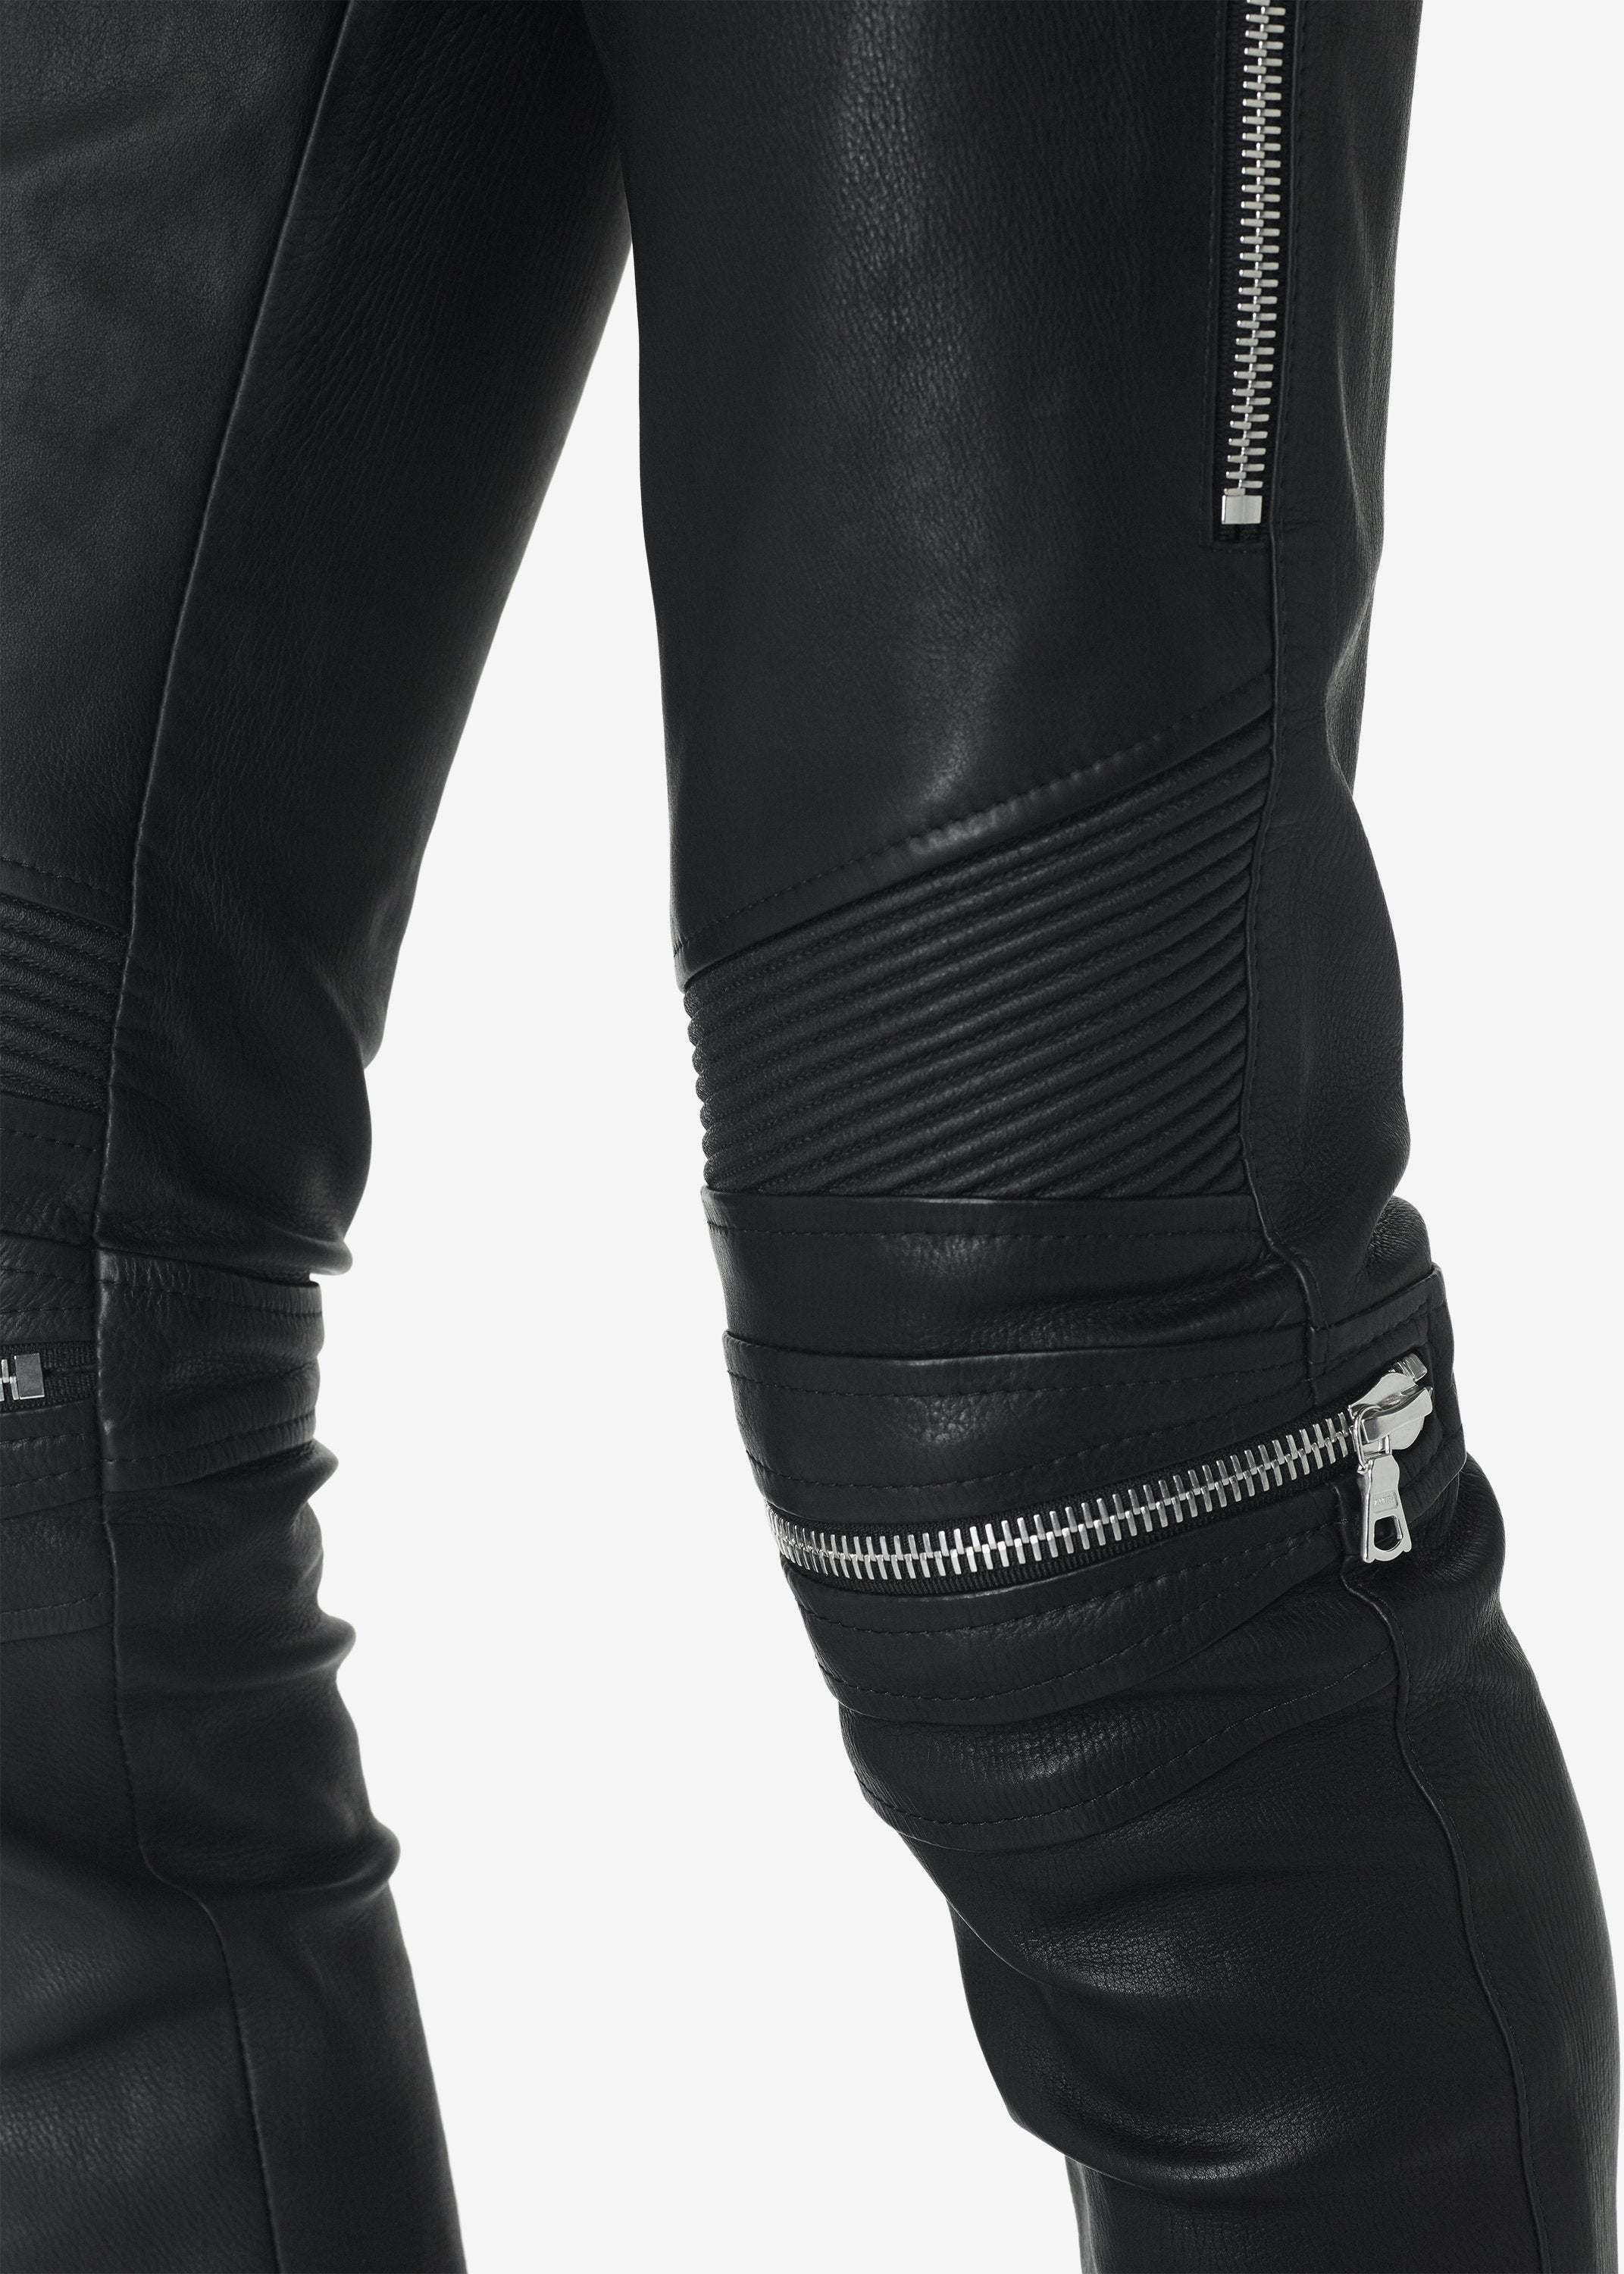 mx2-leather-pants-black-silver-image-2